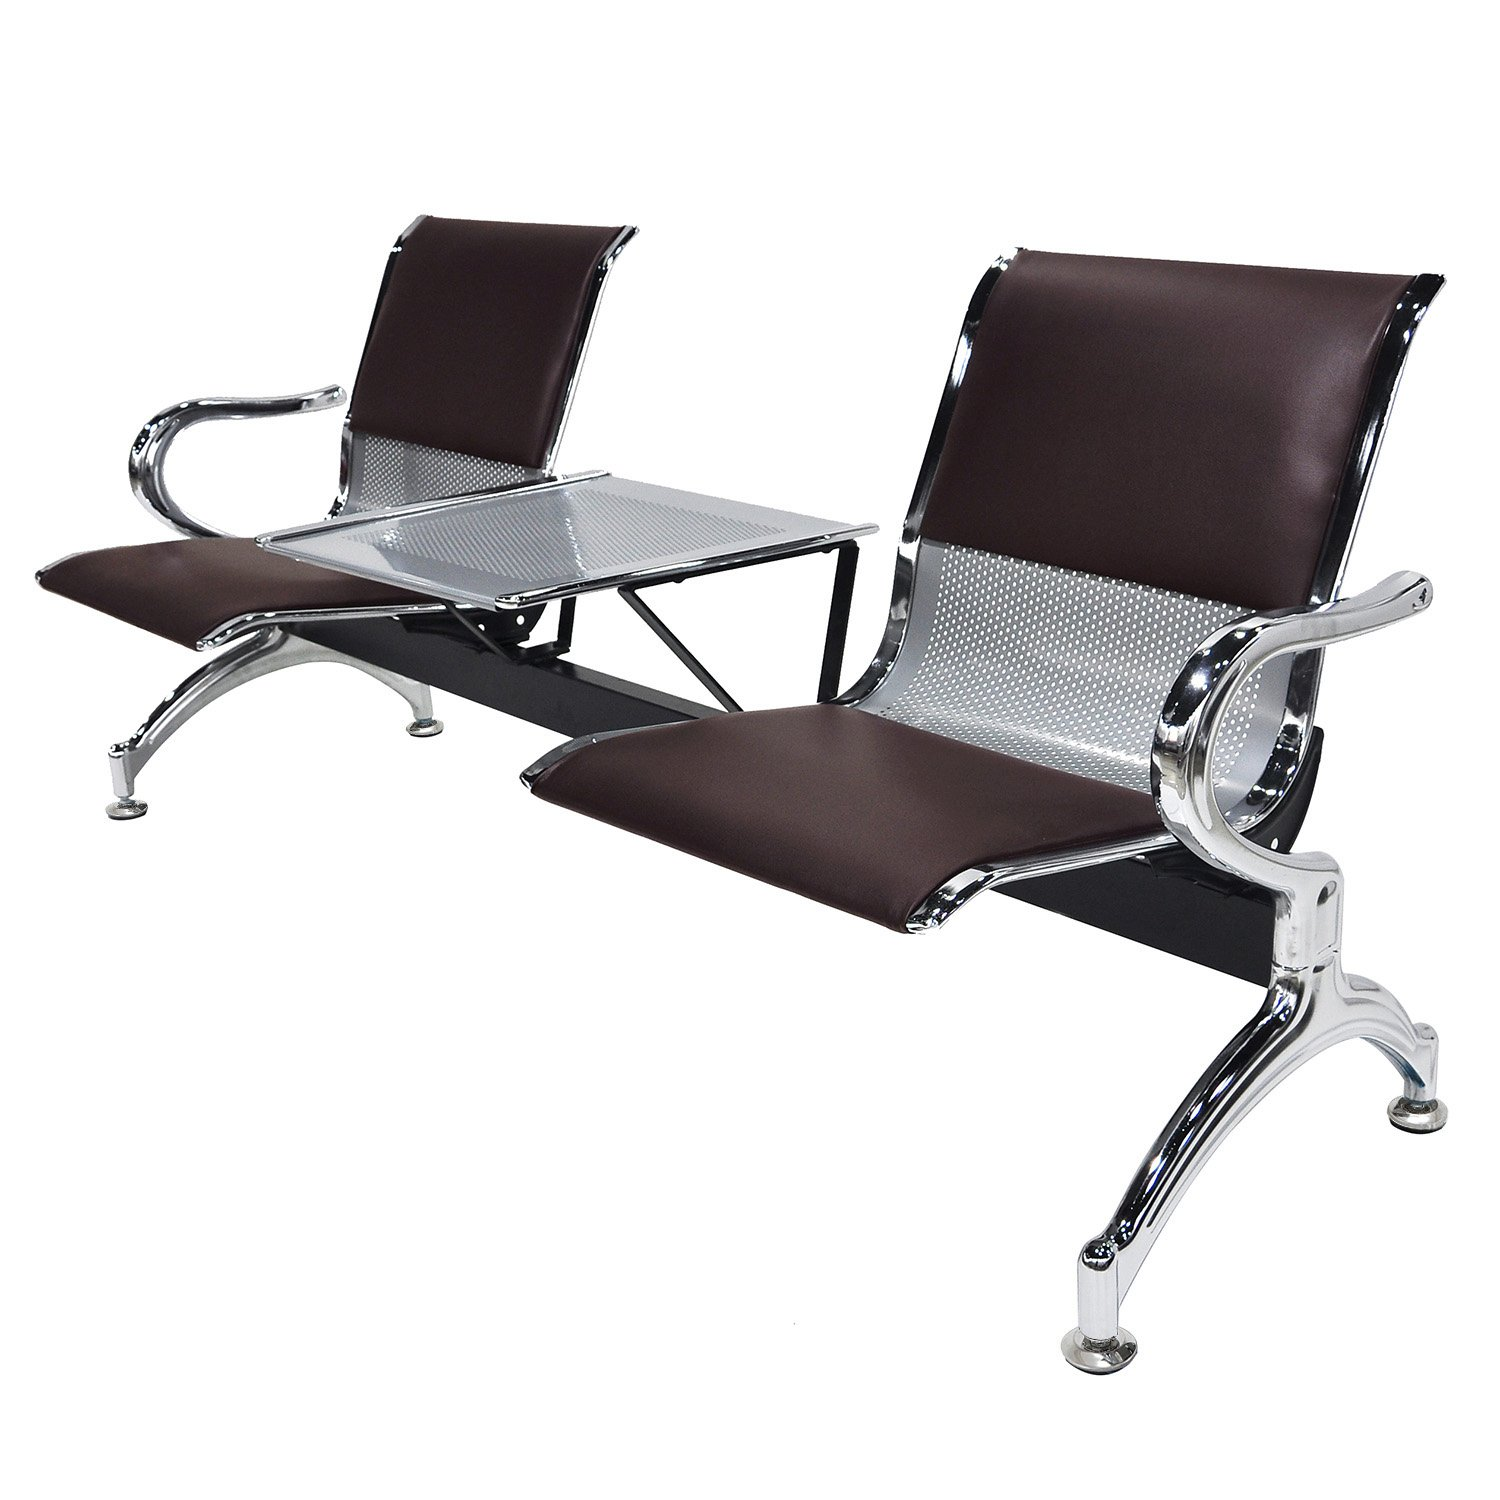 walsport 2-Seat with Desk Metal Waiting Room Chair Leather Business Reception Bench Room Garden Salon Barber Bench for Barbershop Salon Airport Bank Hospital Market, Brown